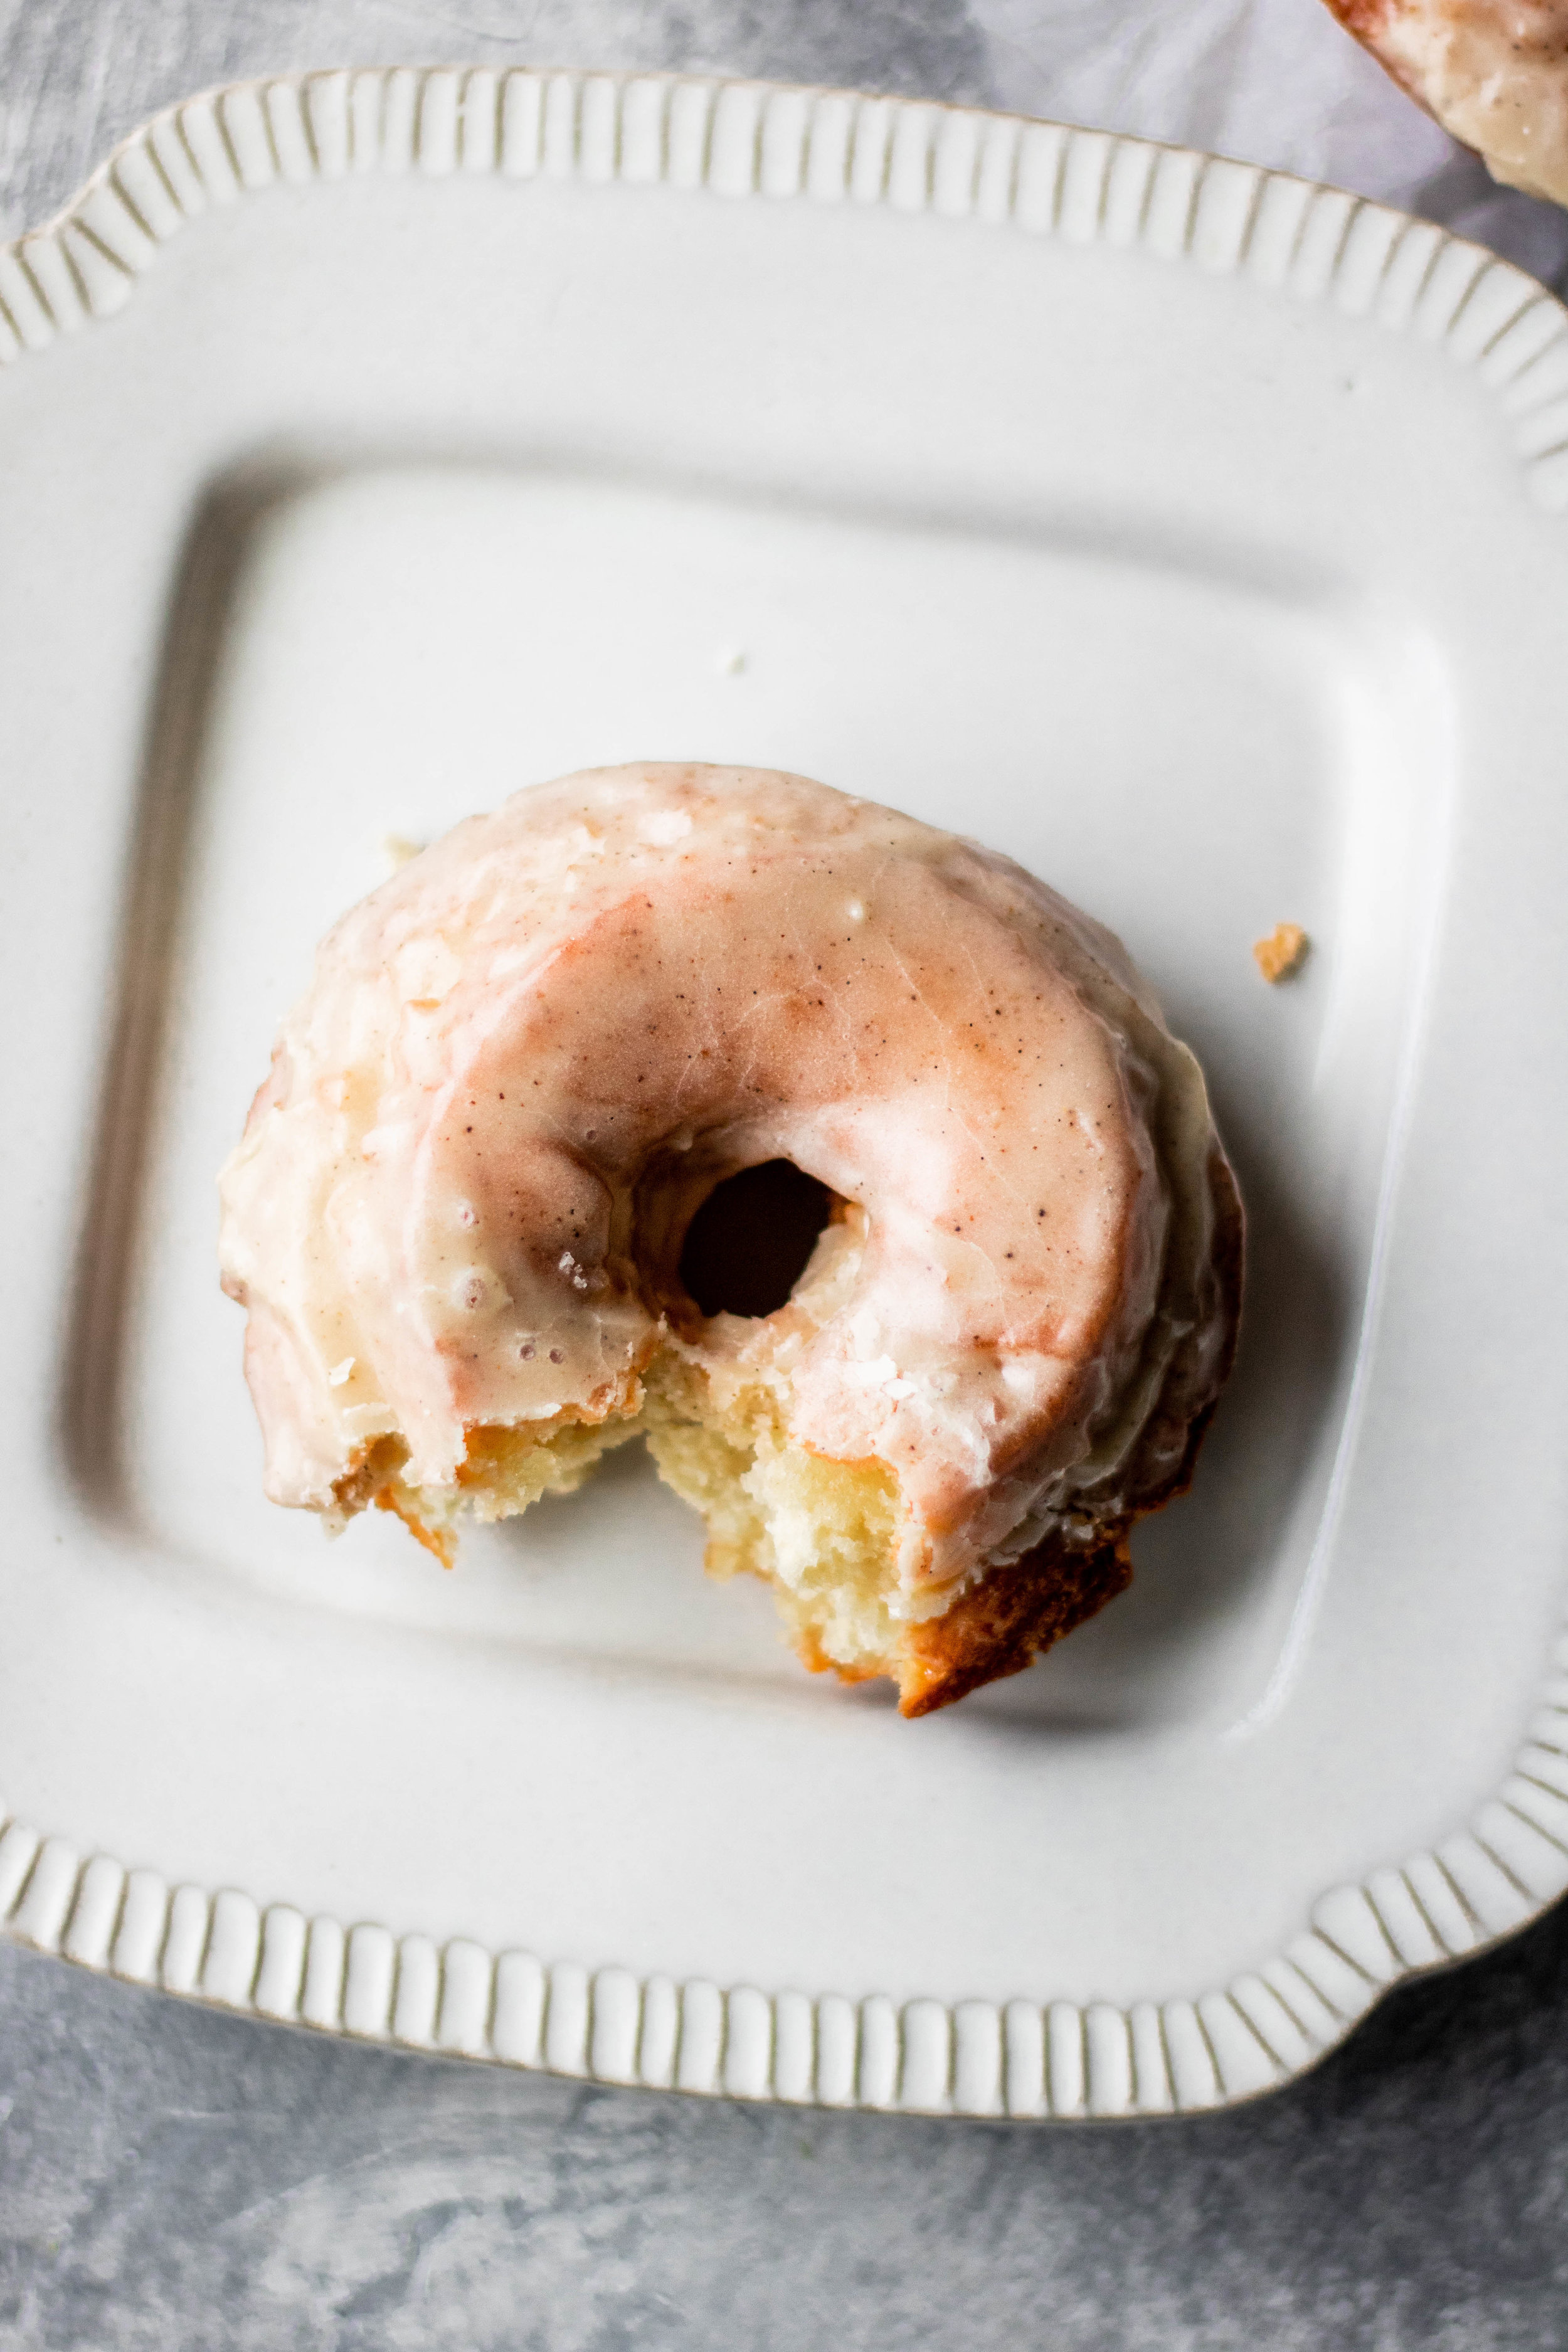 old fashioned donut17.jpg